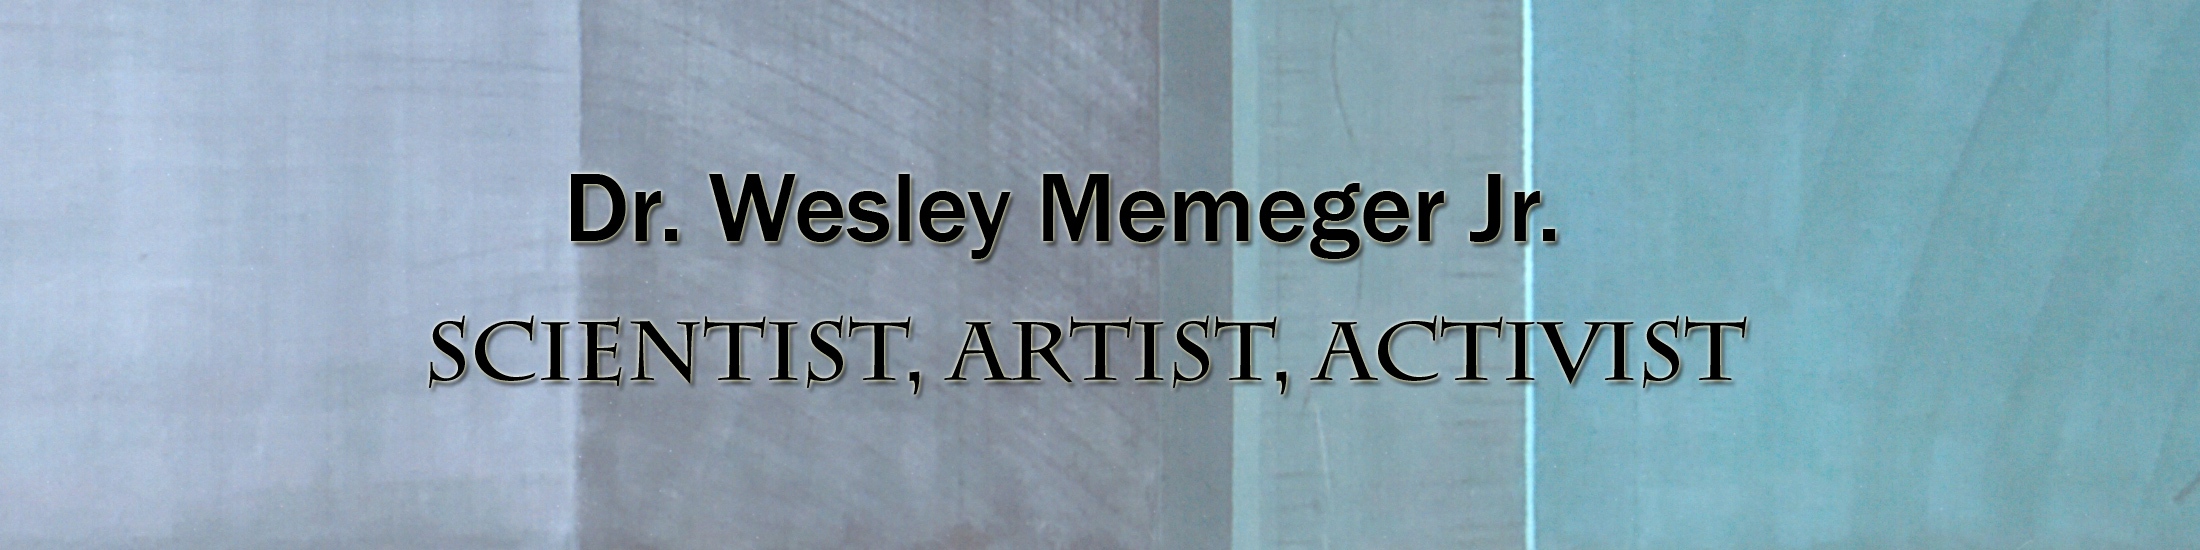 Banner for Dr. Wesley Memeger Jr. Digital Exhibit